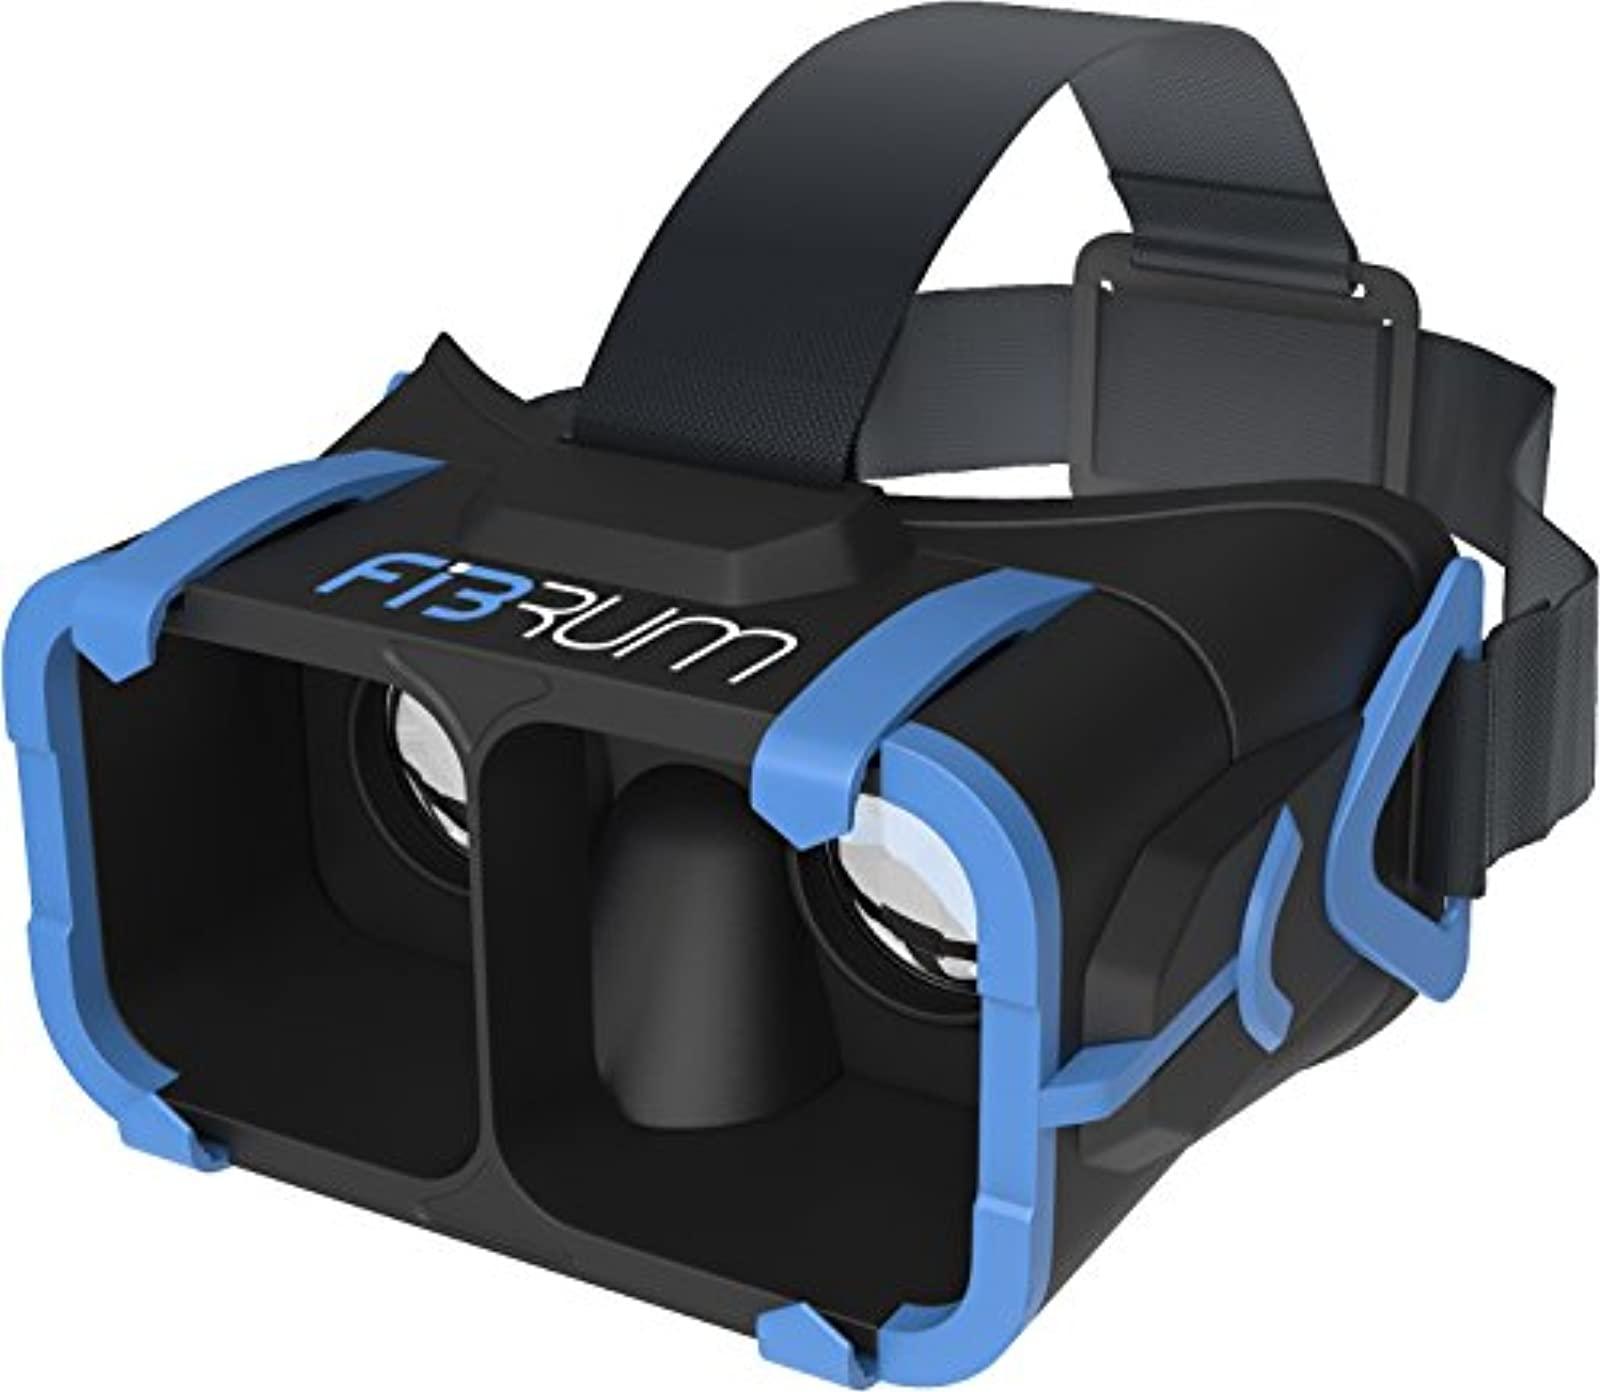 Fibrum Portable Virtual Reality Kit With Unlimited Fibrum App Downloads 4-6 Sc